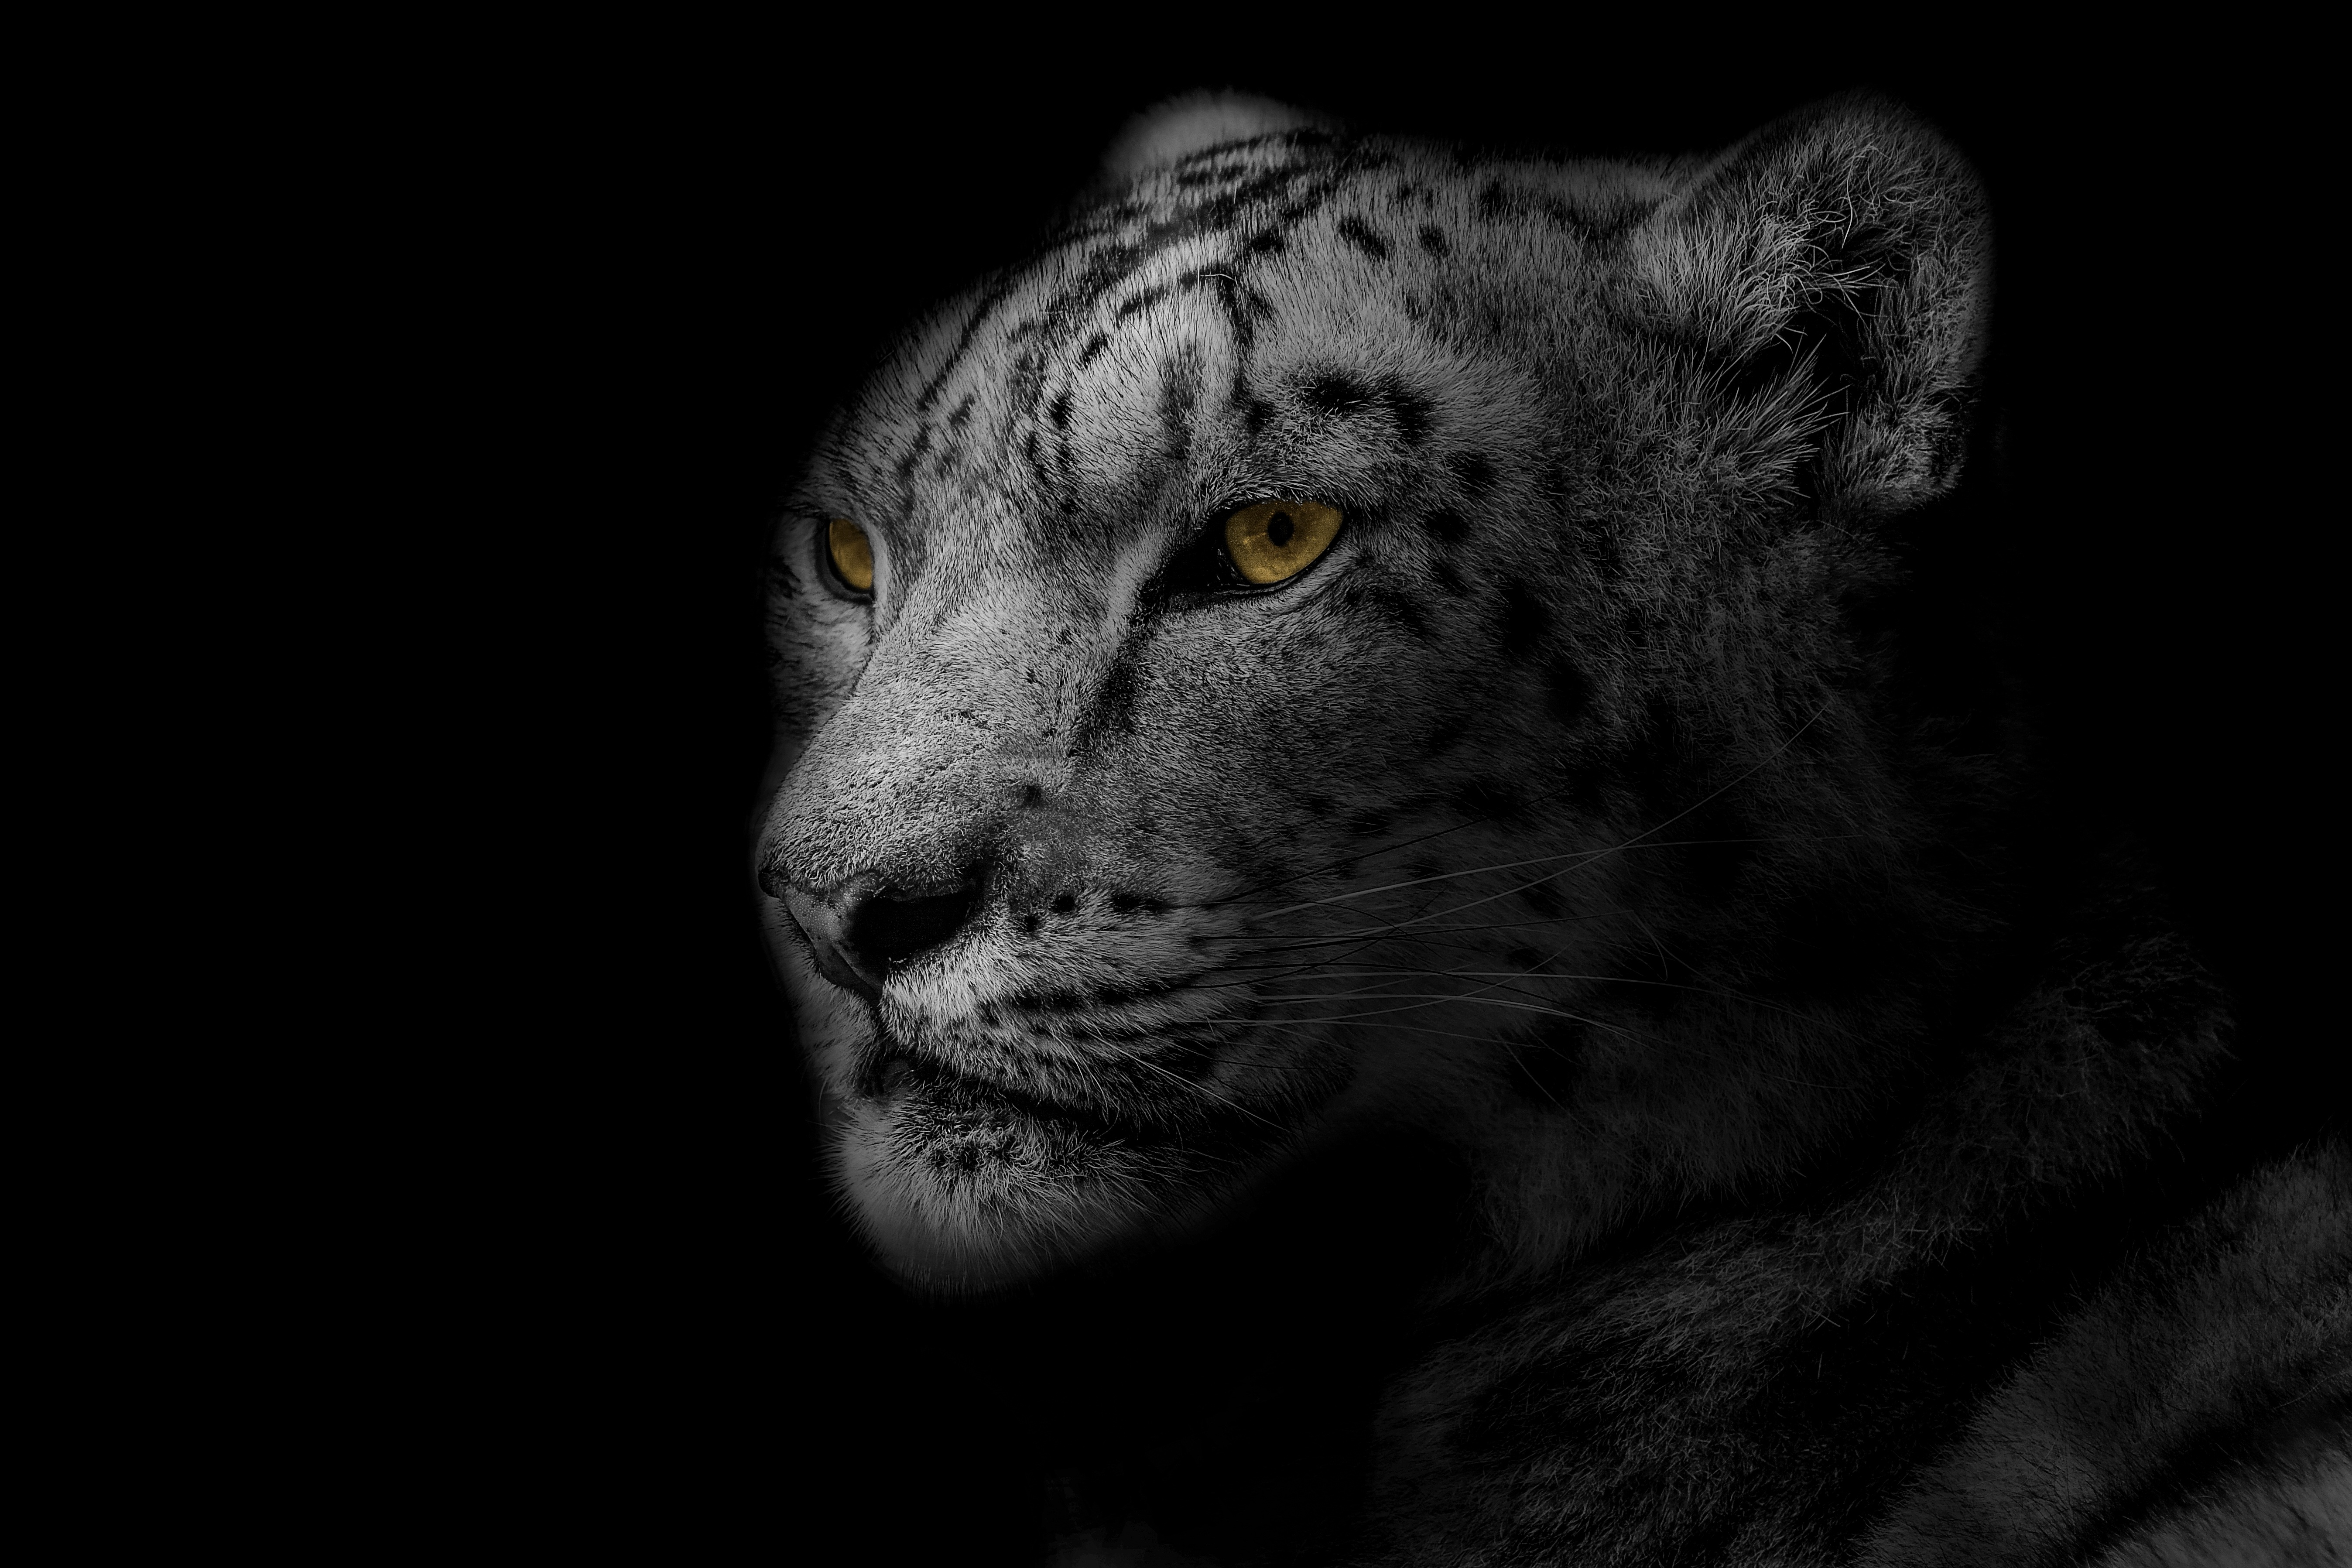 85670 download wallpaper Animals, Leopard, Muzzle, Spotted, Spotty, Predator, Big Cat, Bw, Chb screensavers and pictures for free